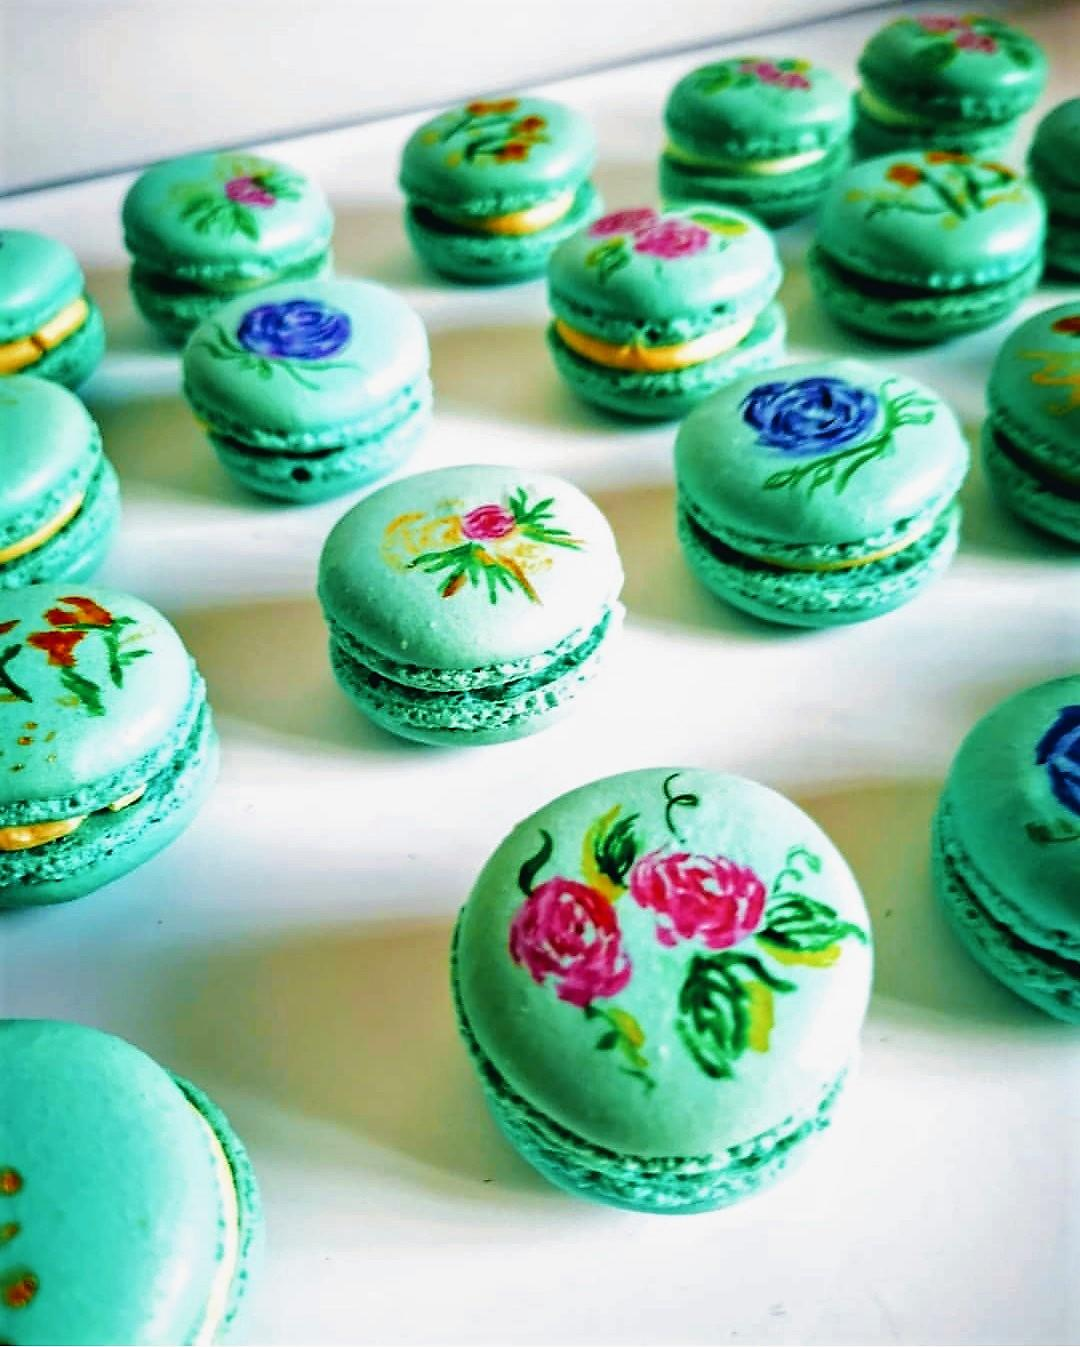 floral assorment hand painted macarons london